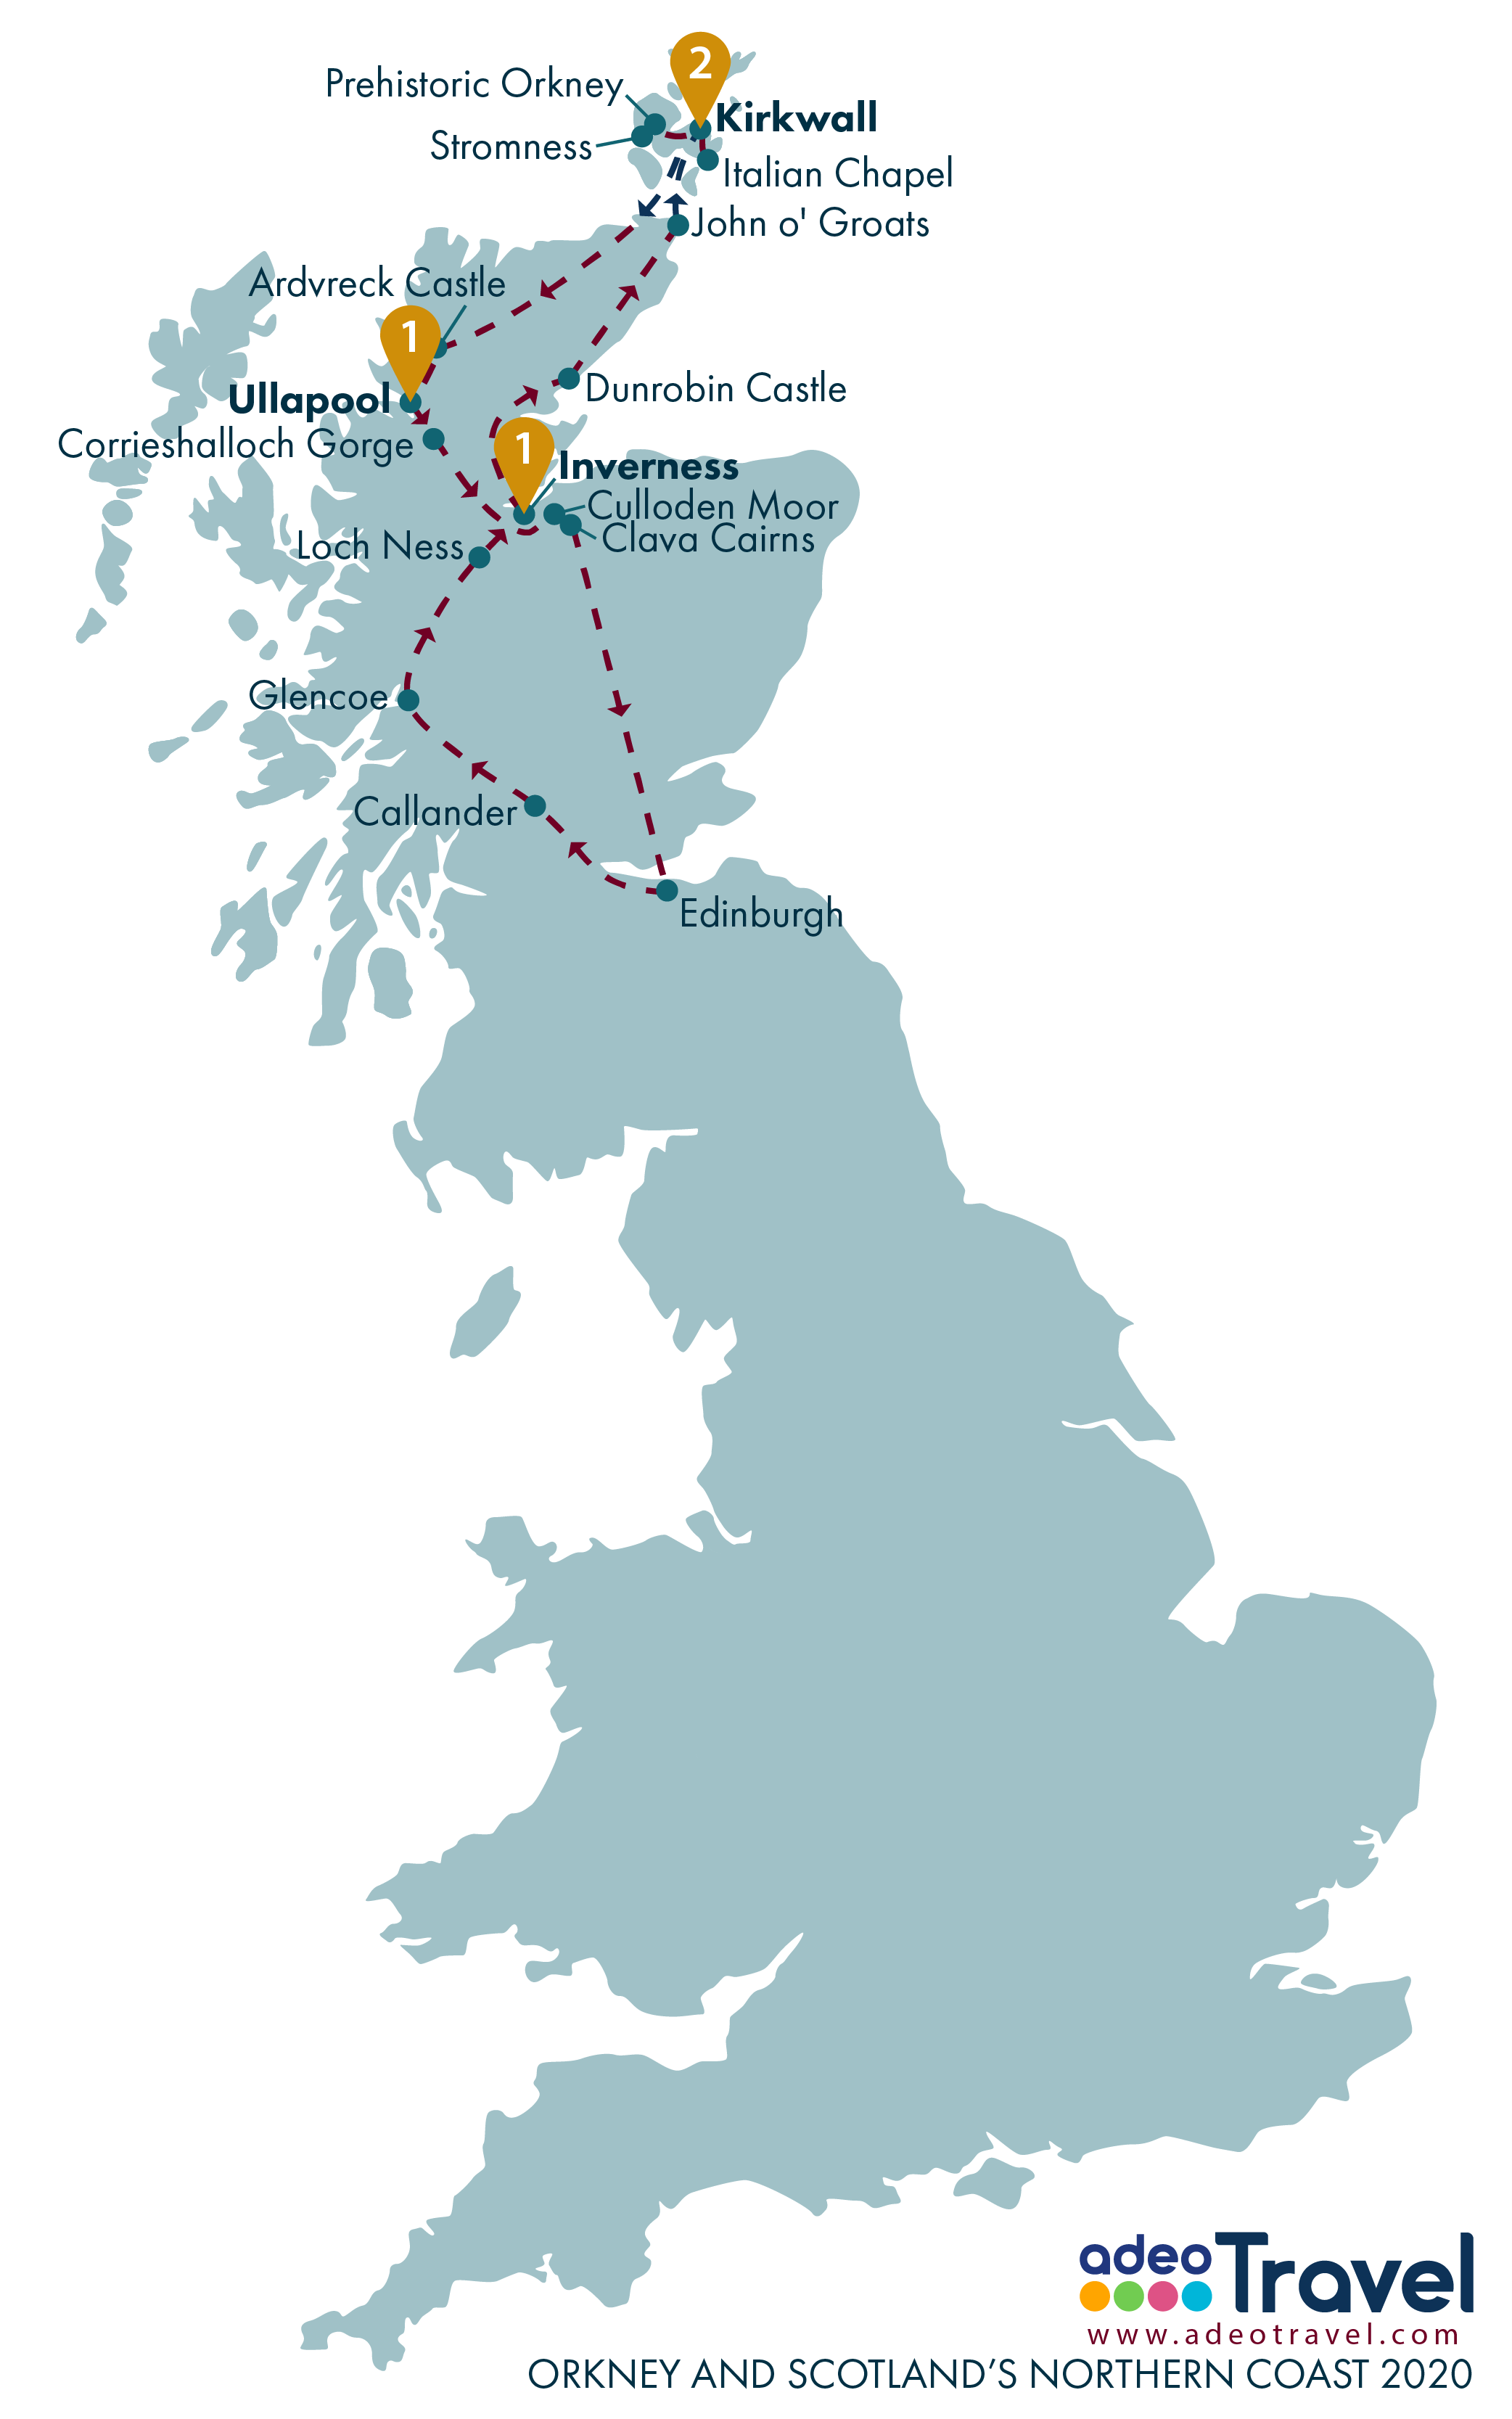 Map - Orkney and Scotland's Northern Coast 2020